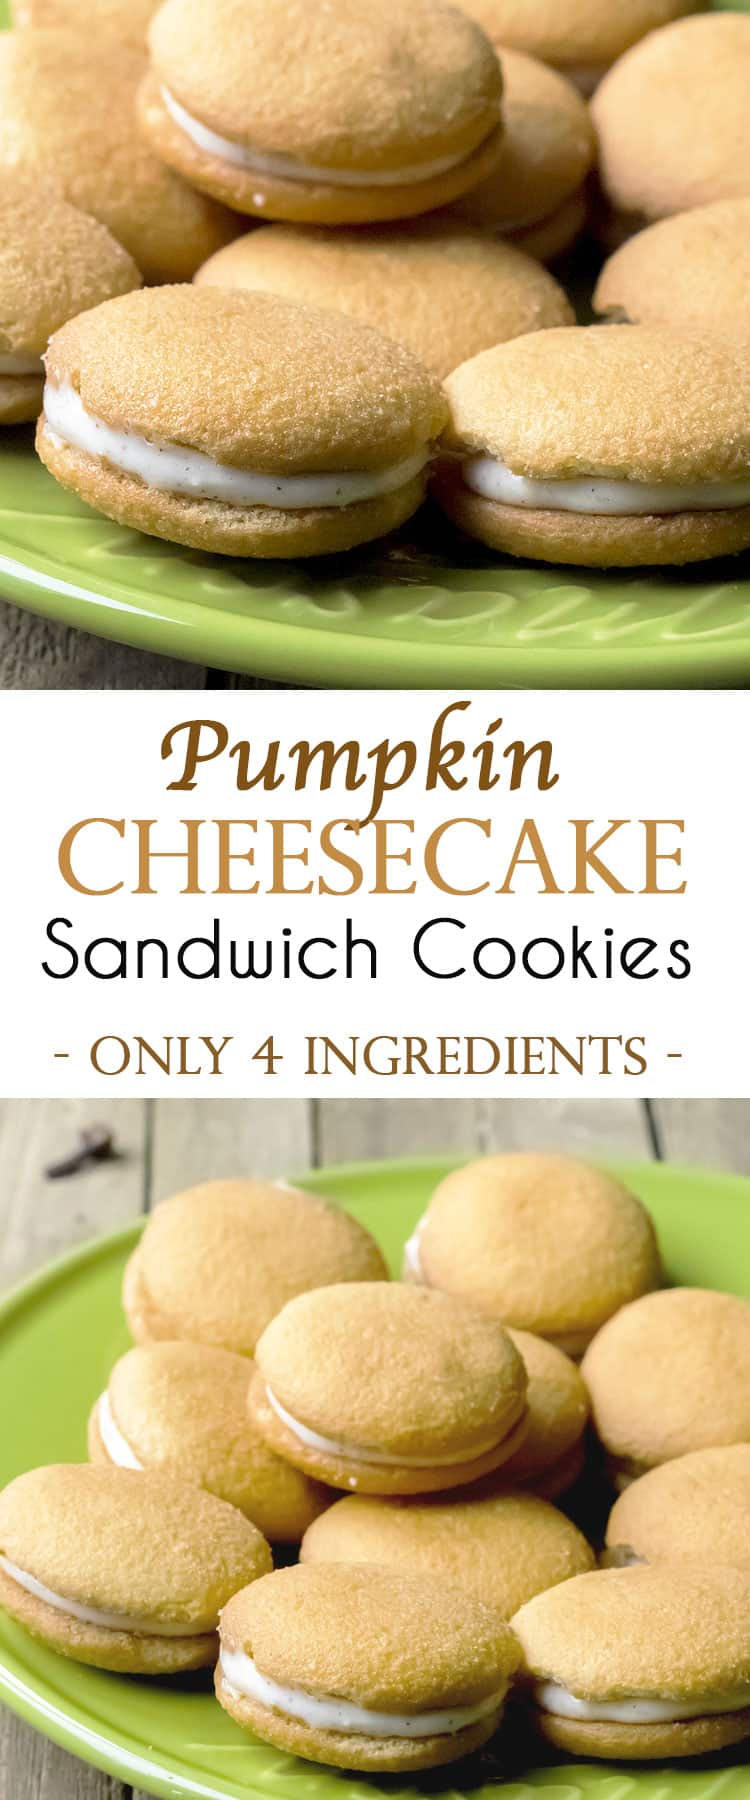 pumpkin-cheesecake-sandwich-cookies-recipe-4-ingredients